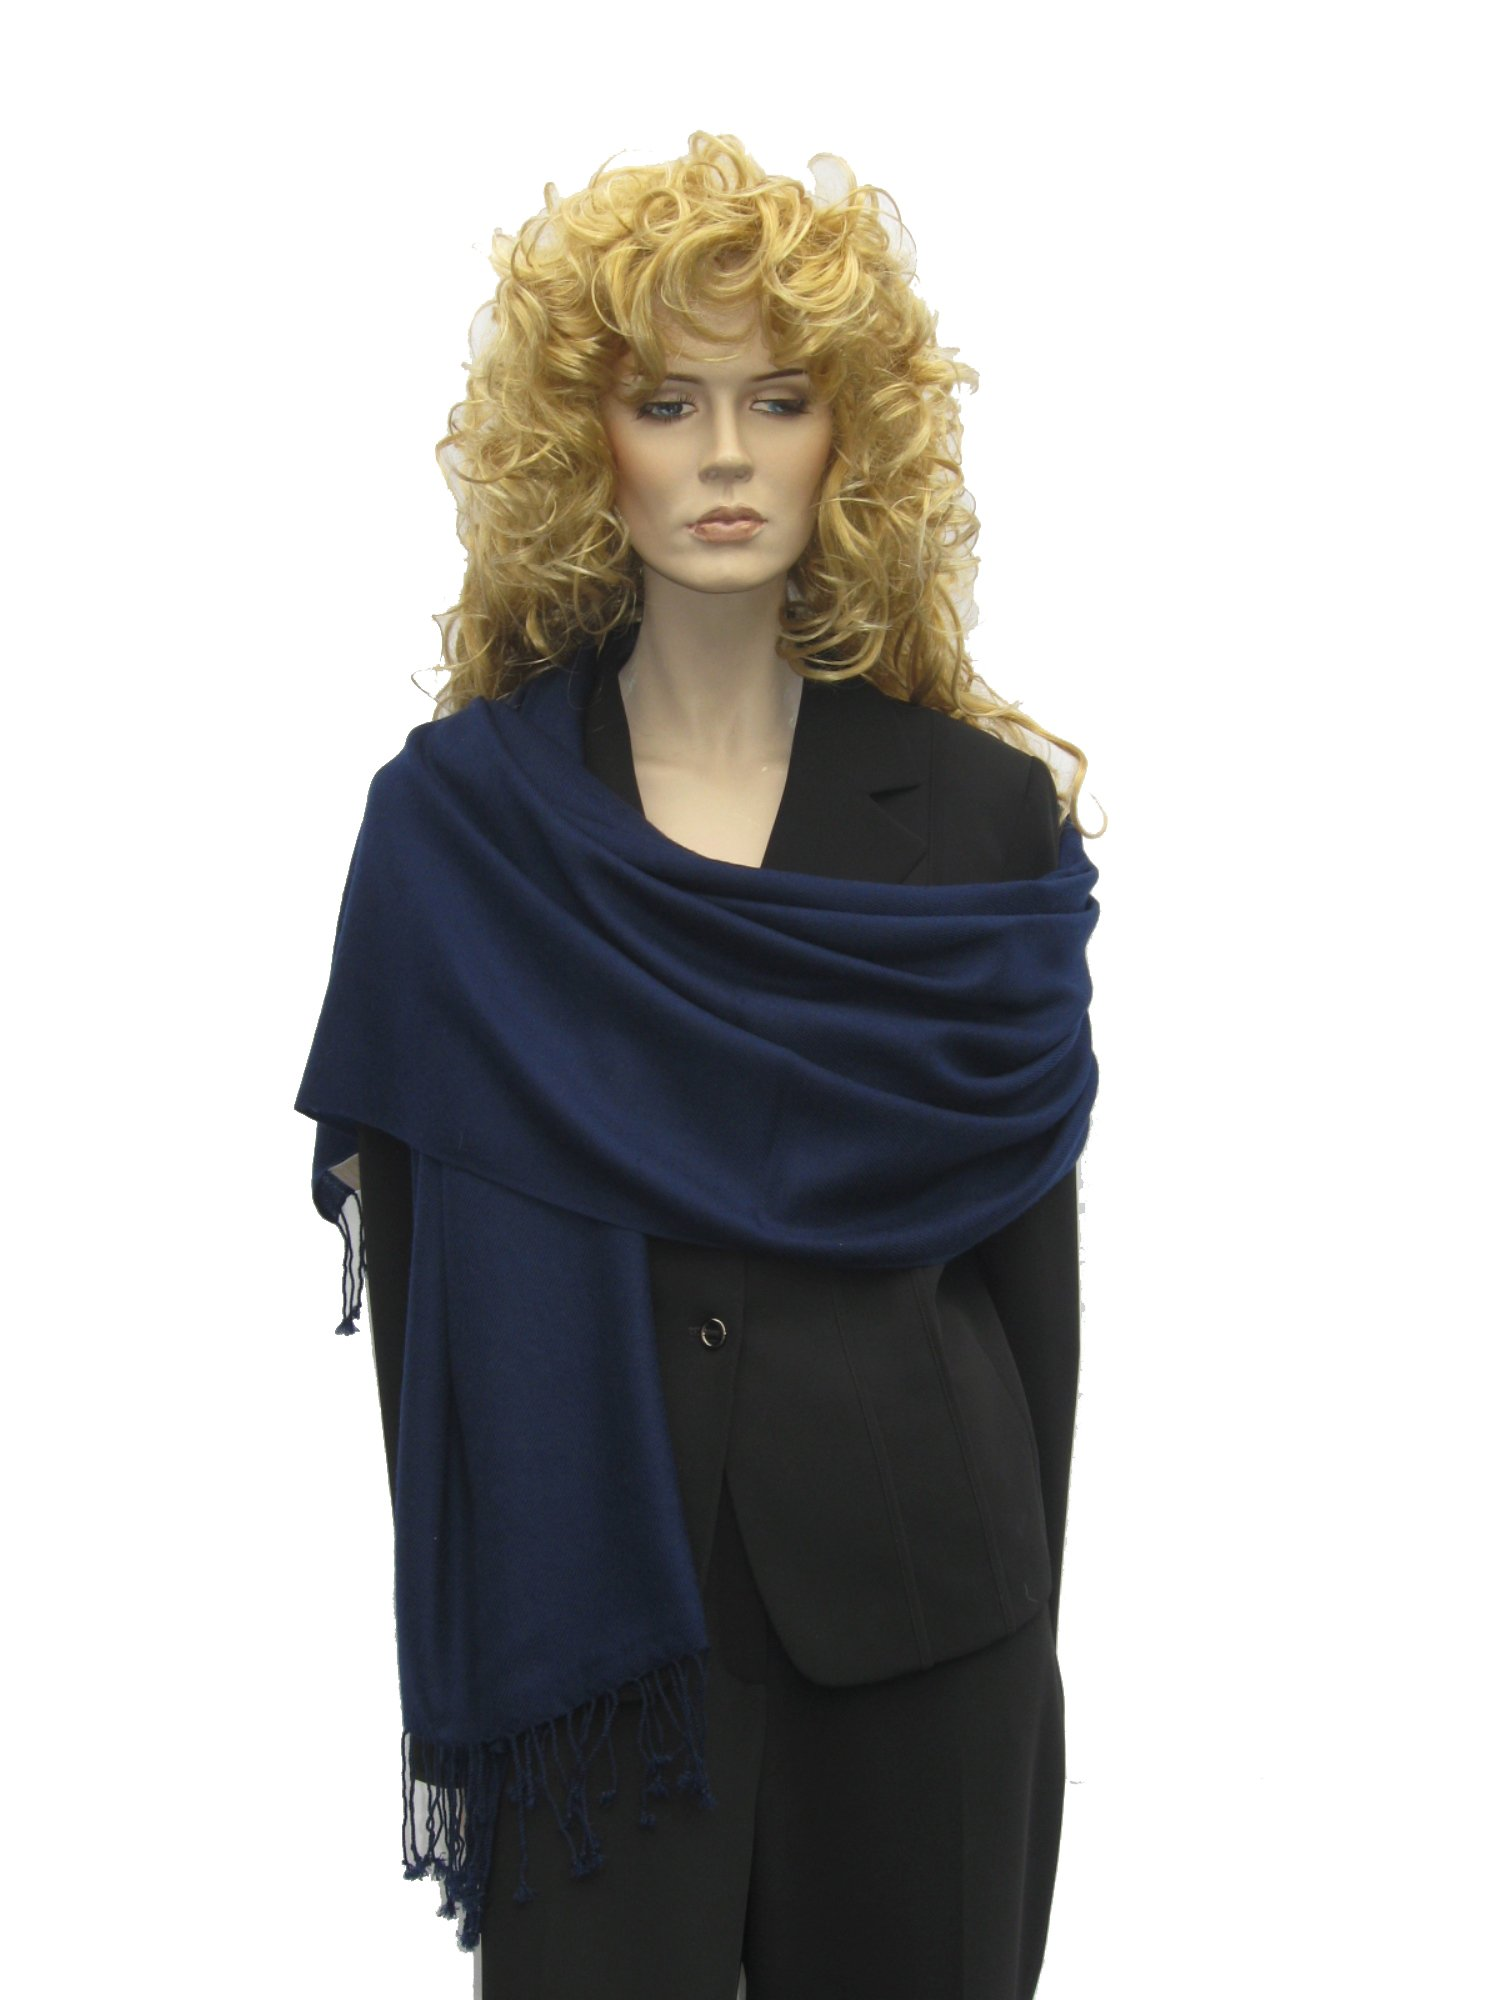 Cashmere Pashmina Group: Cashmere Pashmina Scarf/Shawl/Wrap (3-Ply Solid colors) - Inky Navy